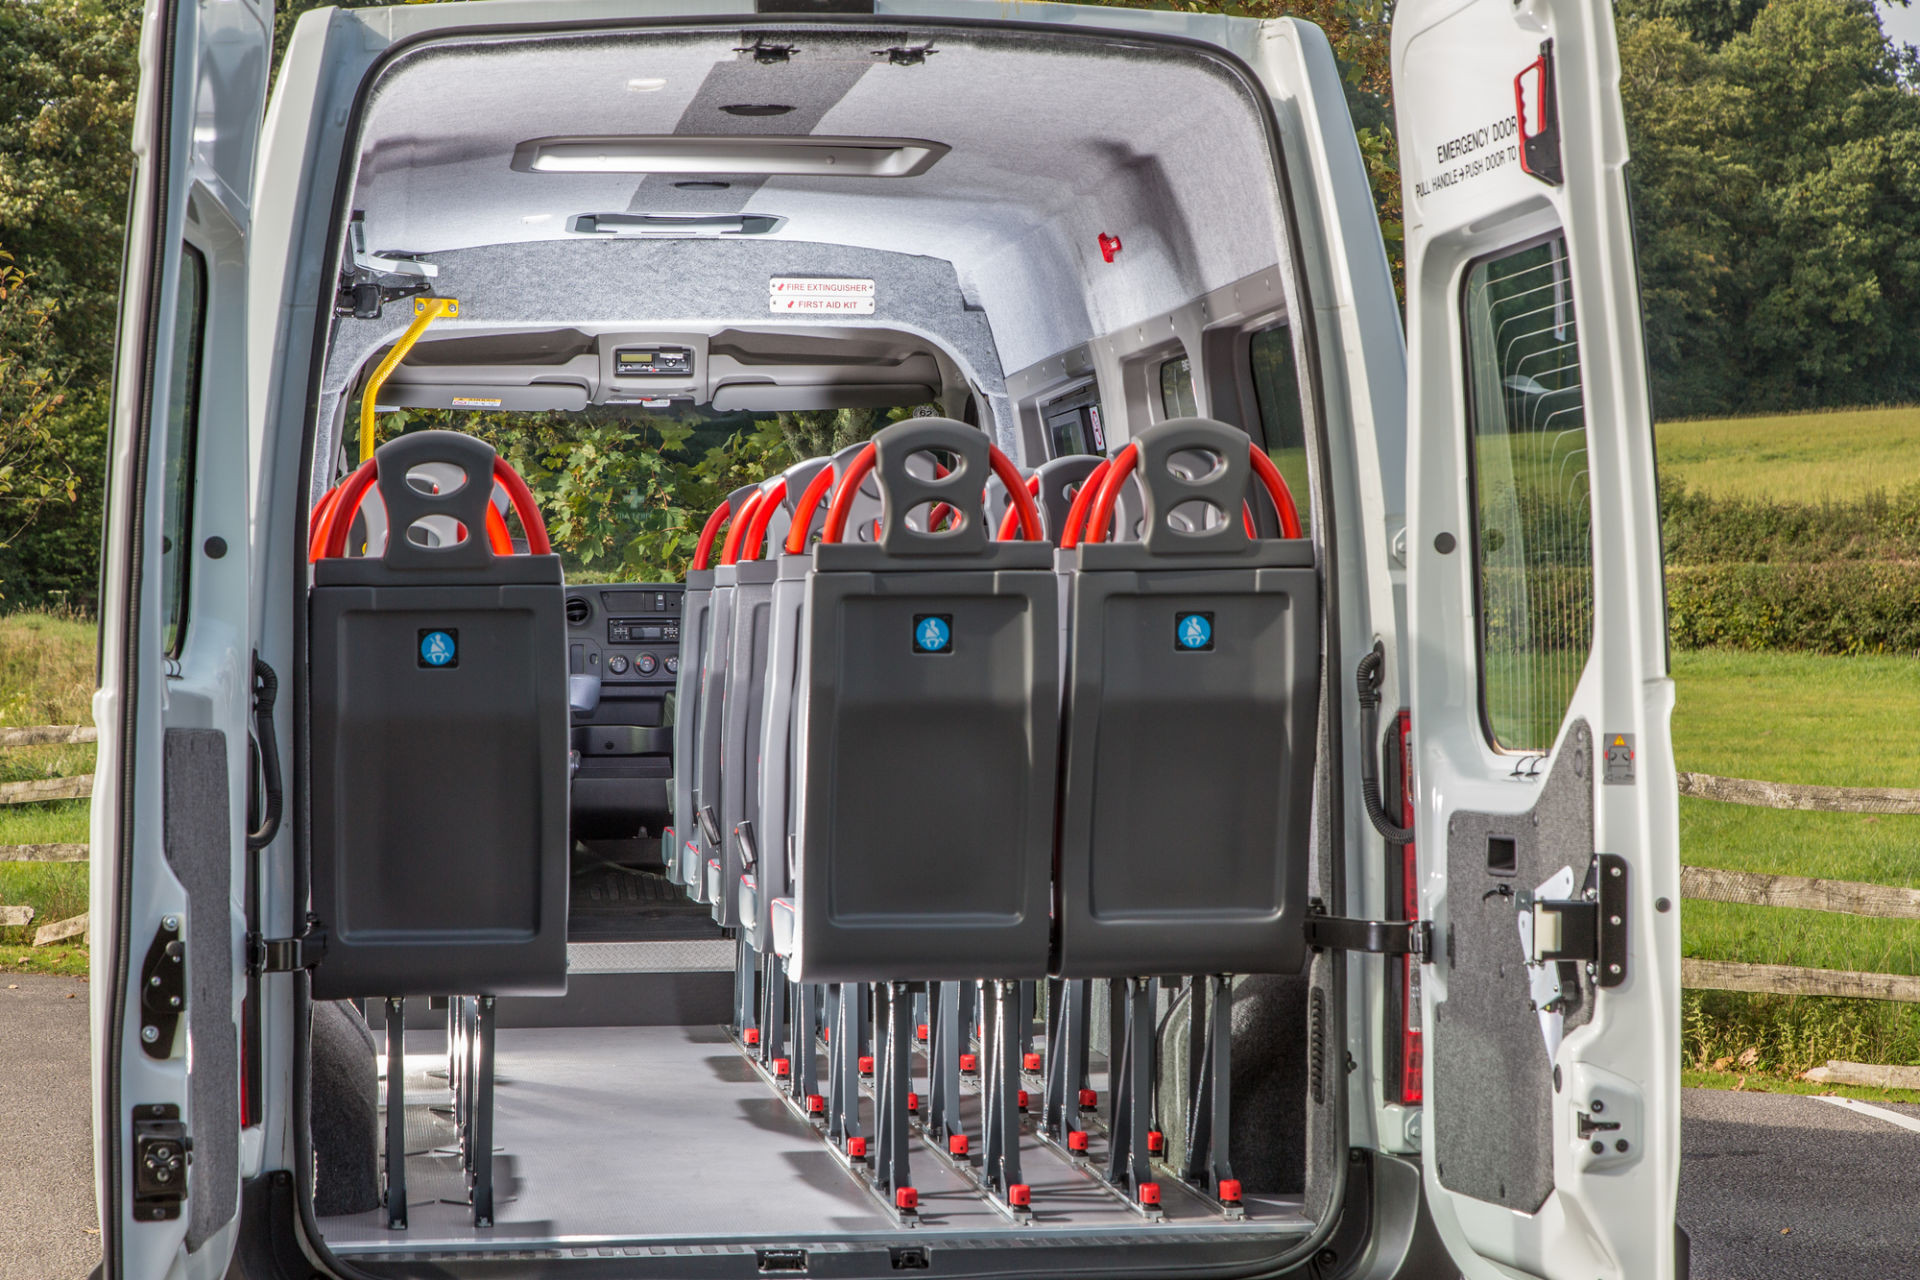 2018 Renault Master 14 Seater Accessible Minibus for Sale - Image 3